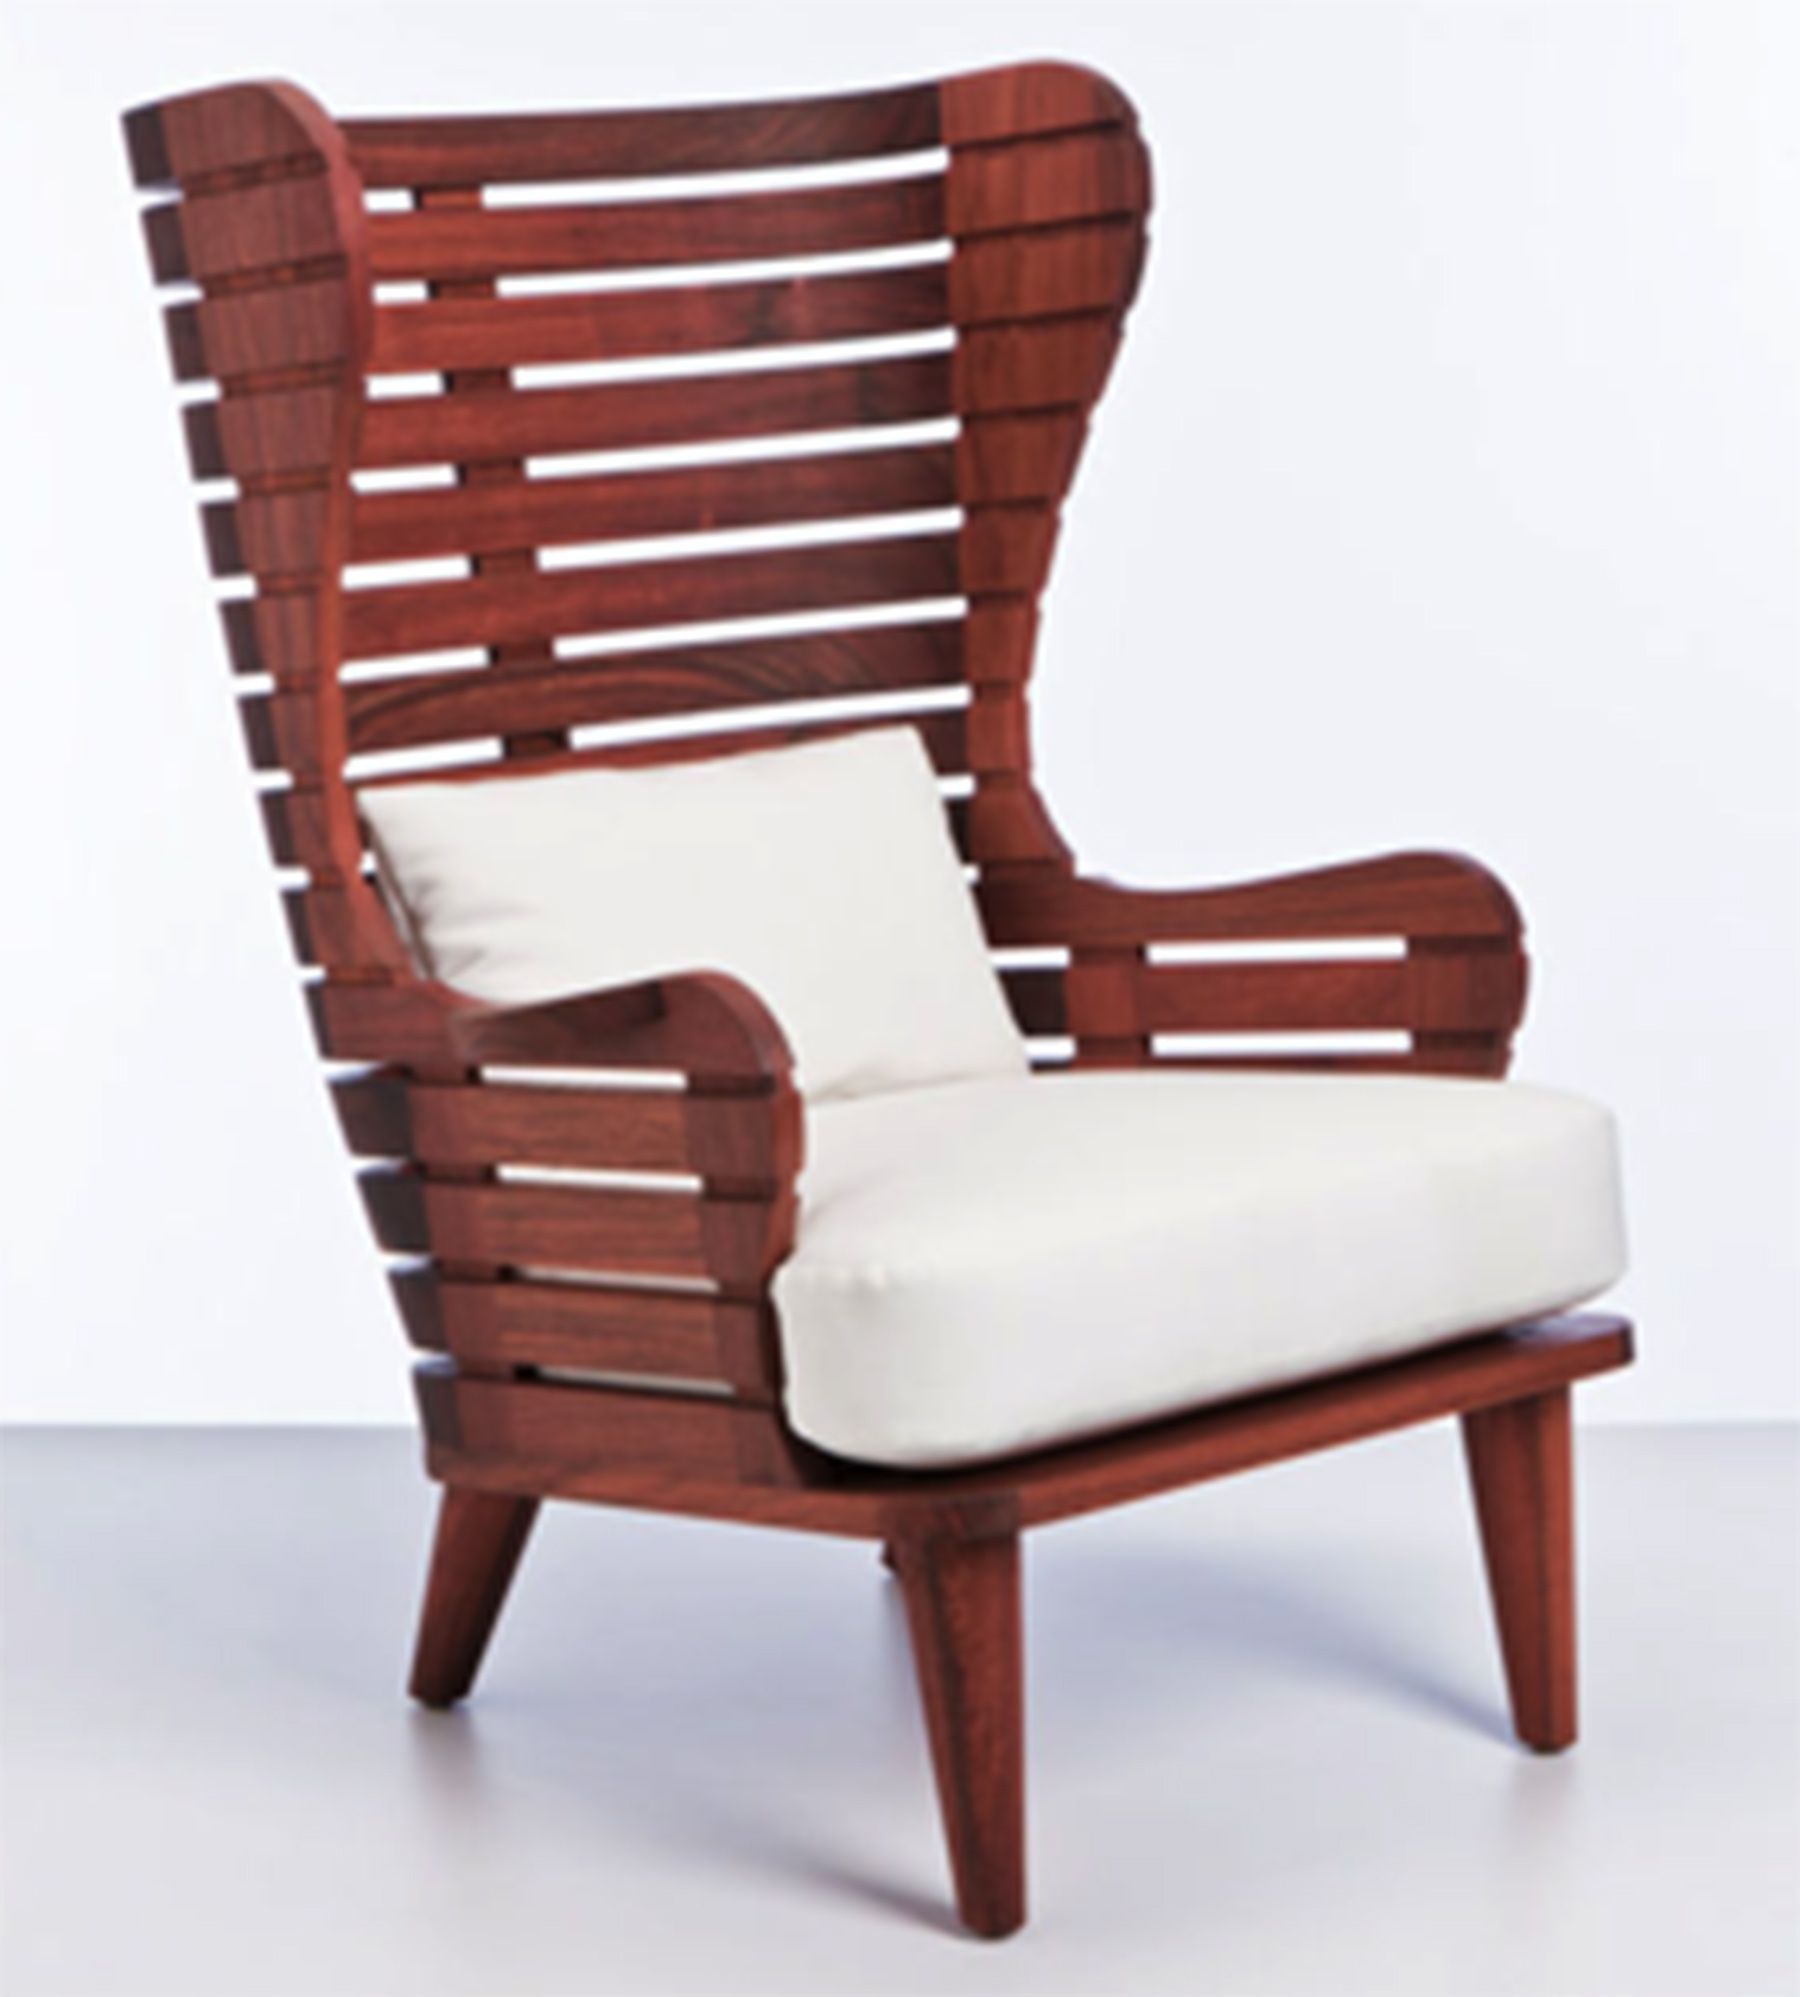 contemporary united states an indoor/outdoor wingback chair. shown